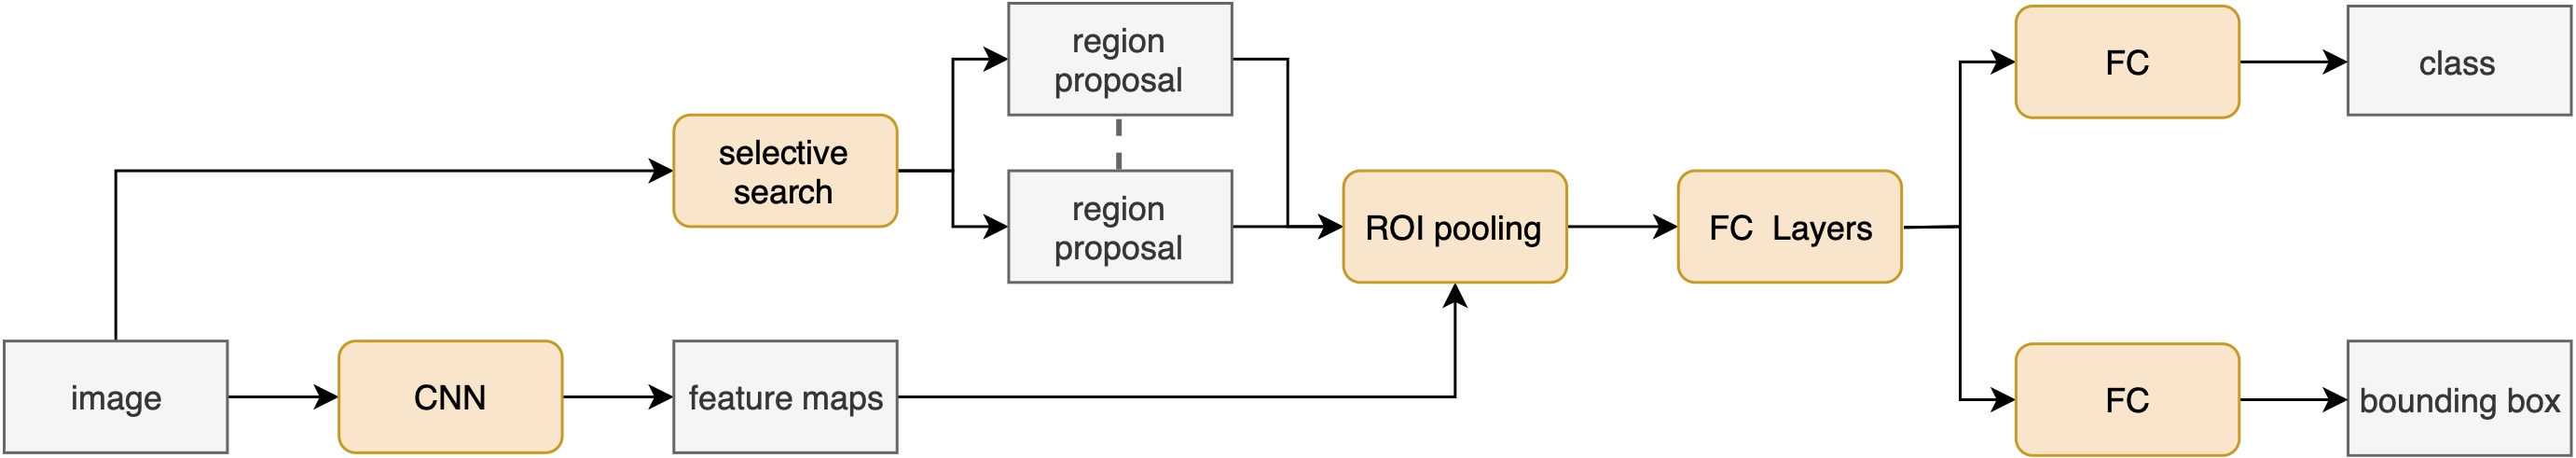 Figure 2: The standard architecture of a Fast R-CNN network. The region proposals are generated by selective-search, but pooled directly on the feature map, followed by multiple FC layers for final classification and bounding box regression.